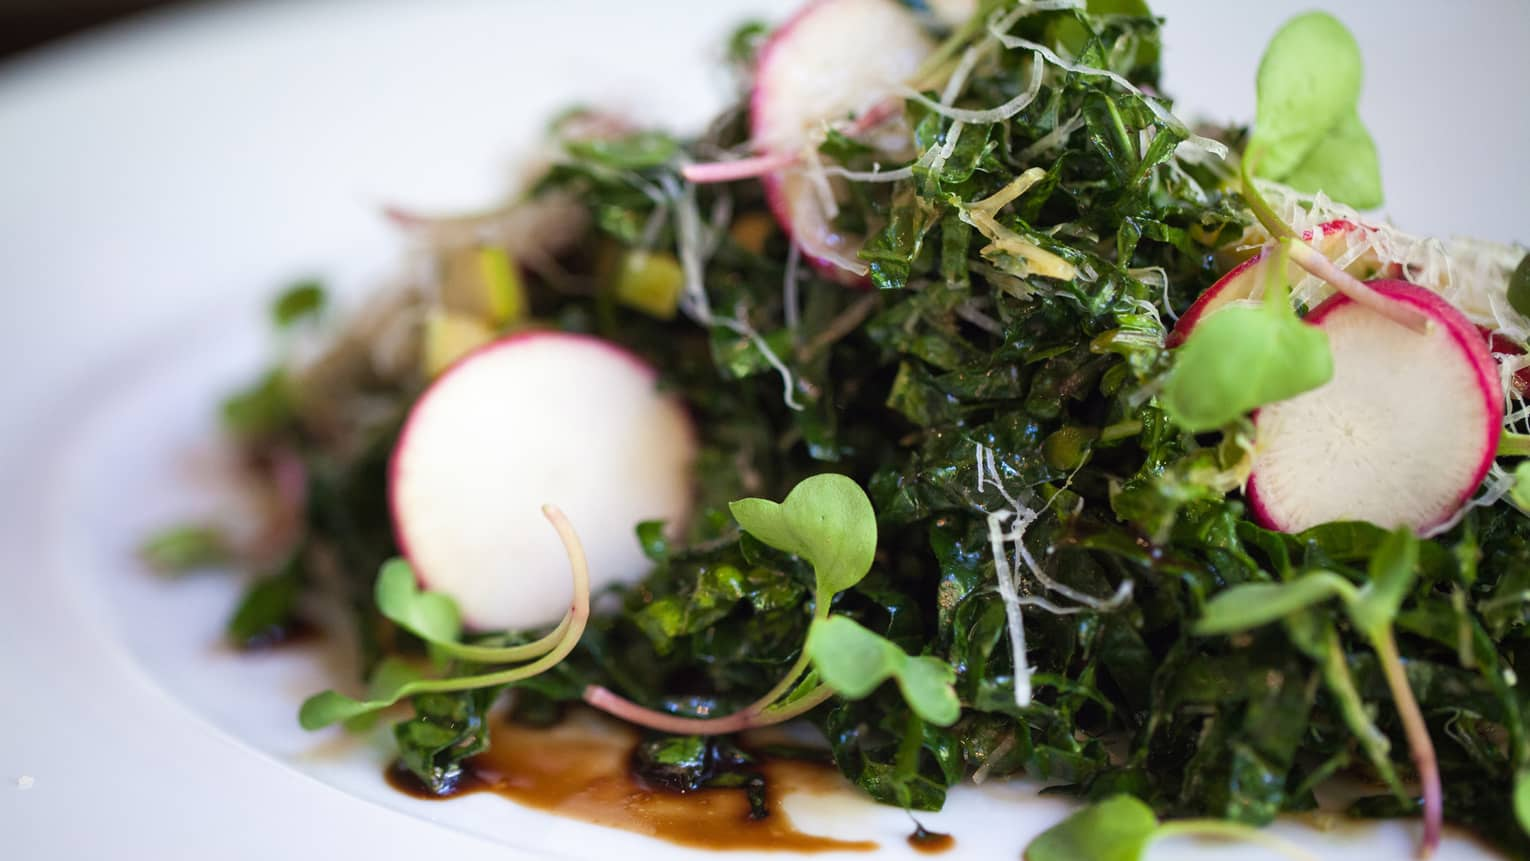 Close-up of kale salad with radish slices, sprouts